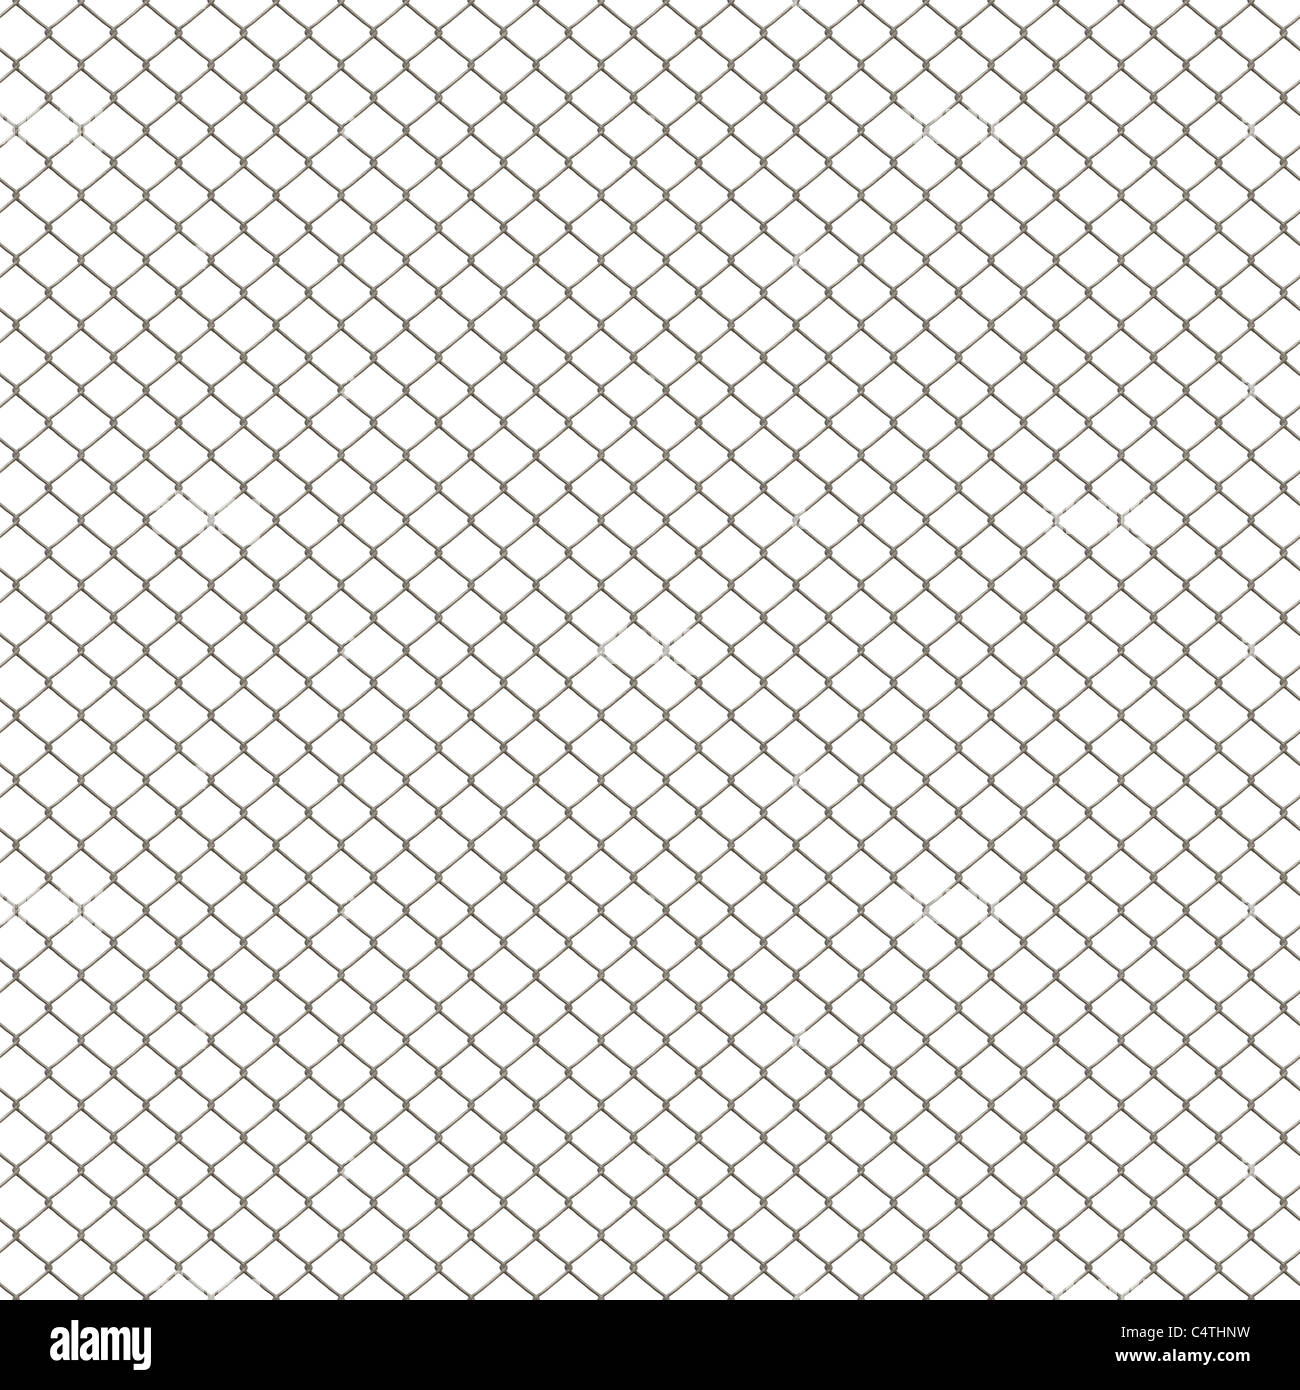 chain link fence texture seamless. A 3D Chain Link Fence Texture Over Black - This Tiles Seamlessly As Pattern In Any Direction Seamless E